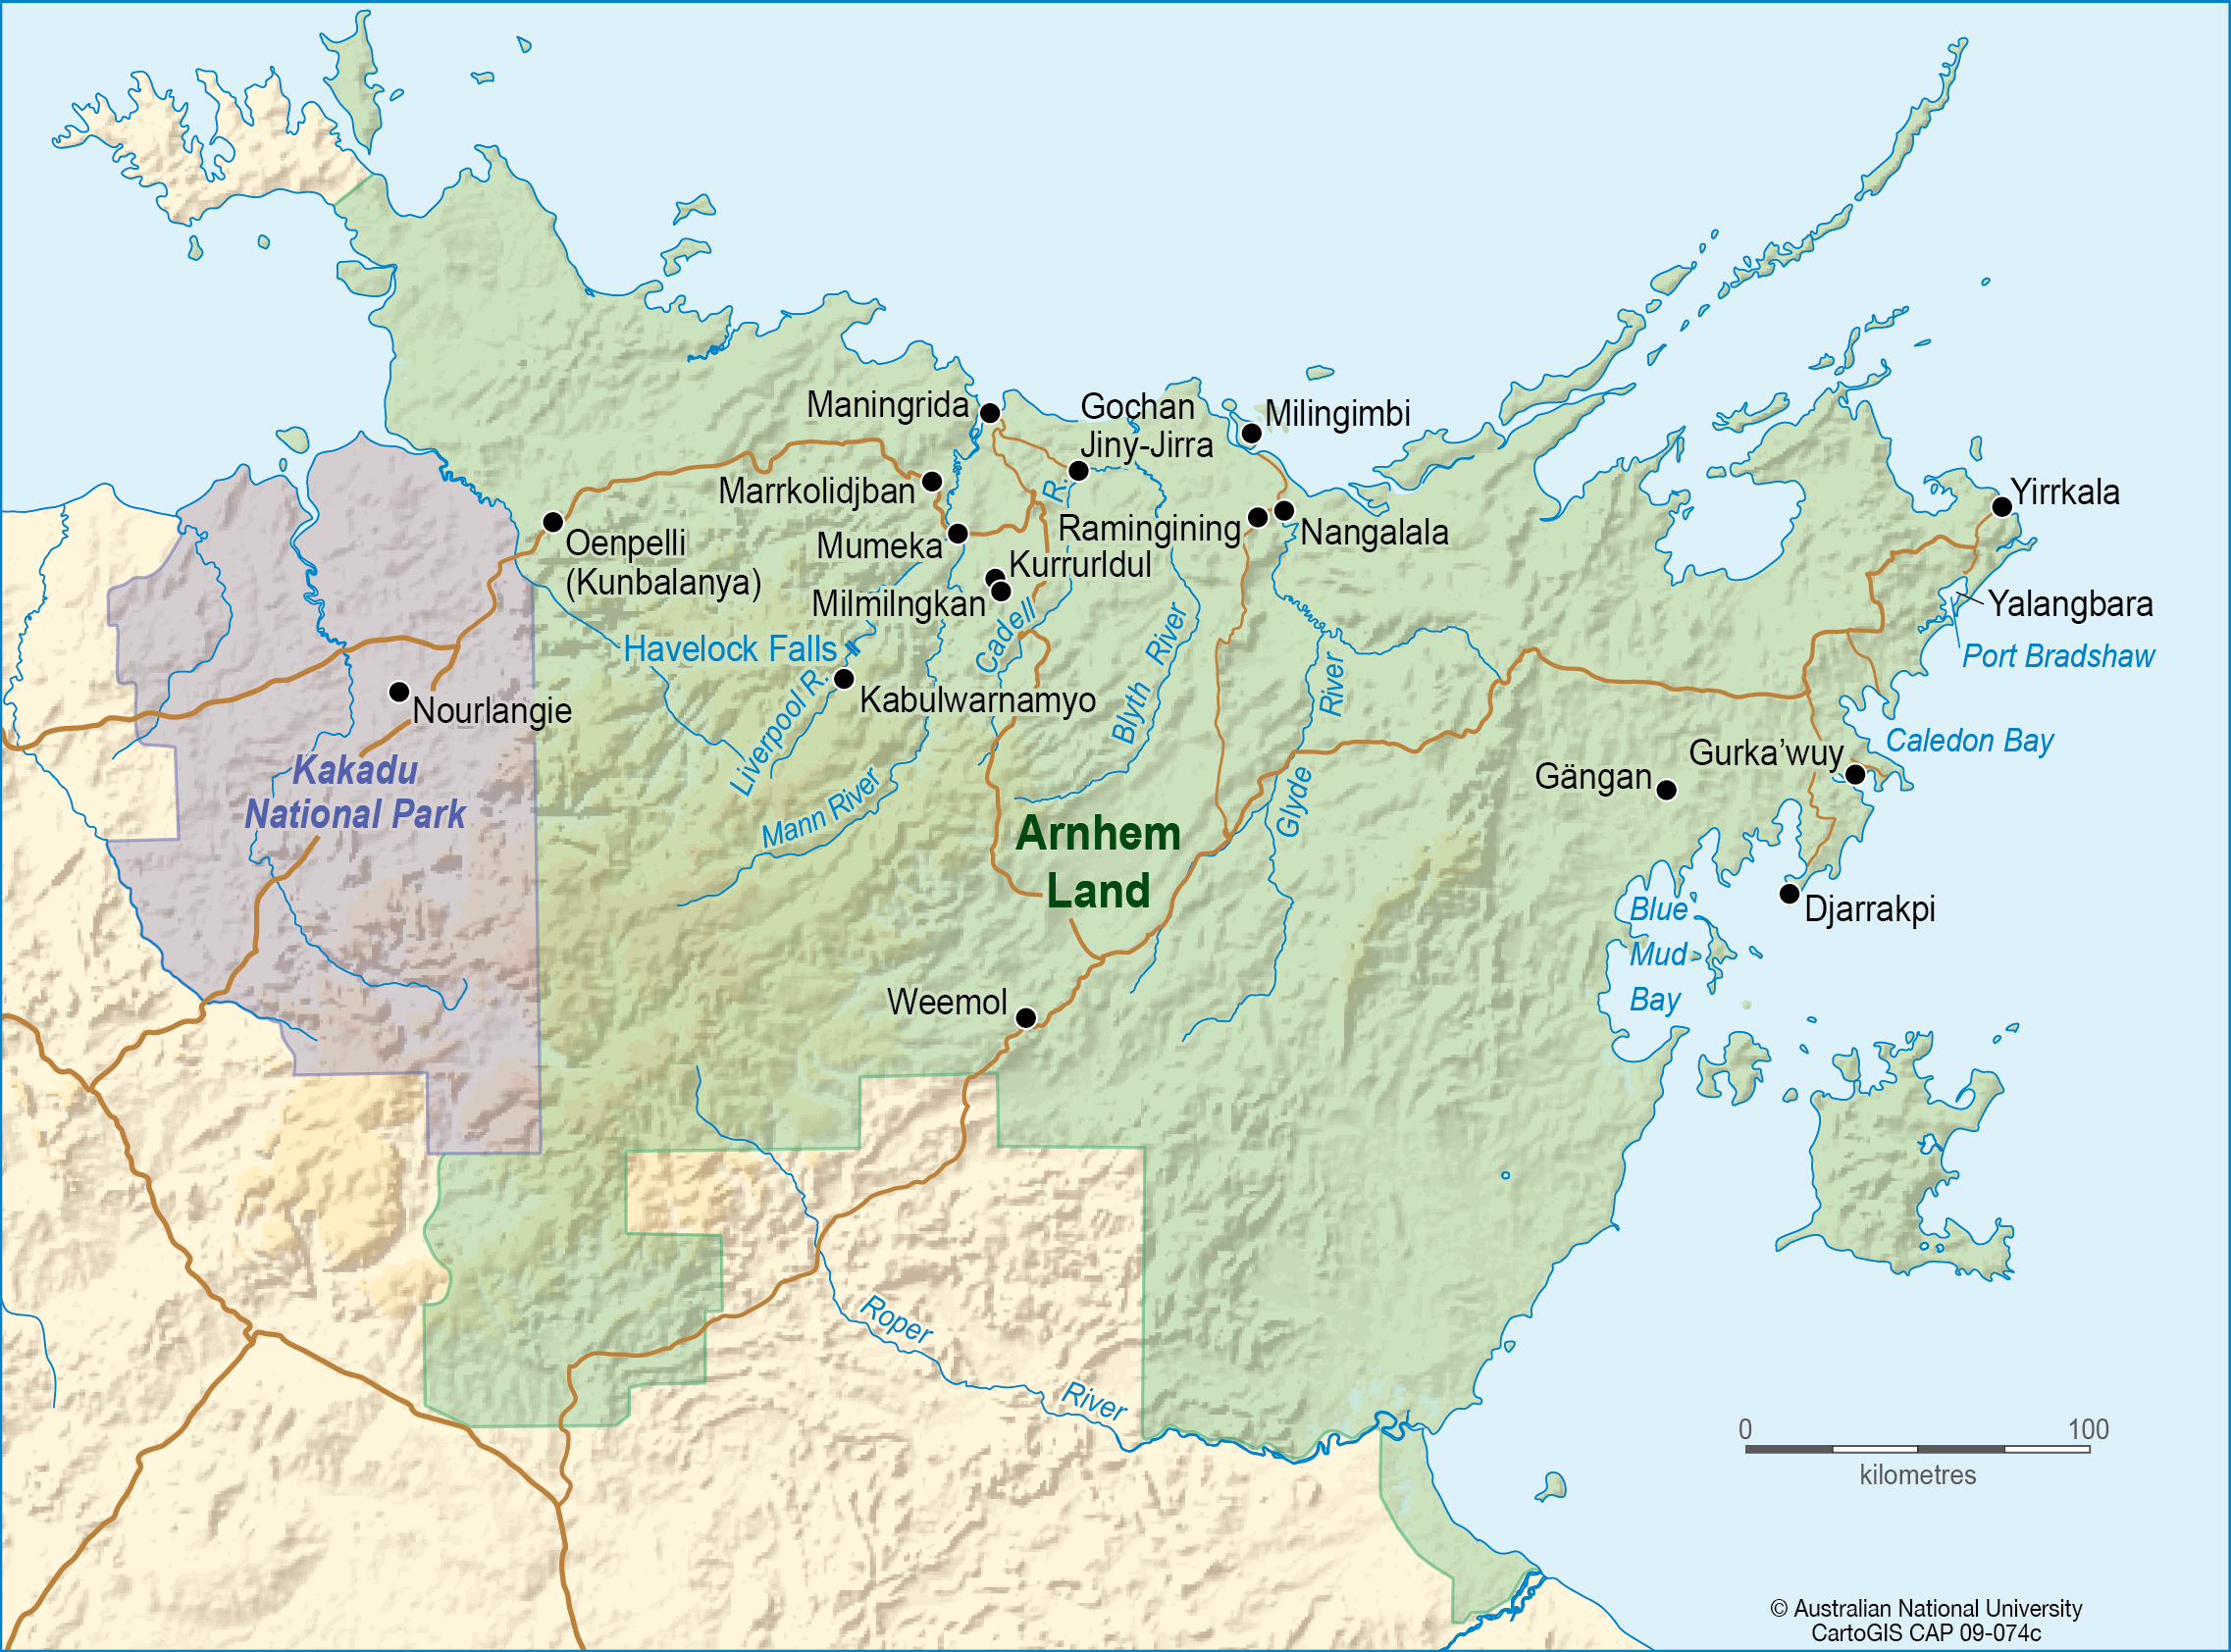 Arnhem Land CartoGIS Services Maps Online ANU